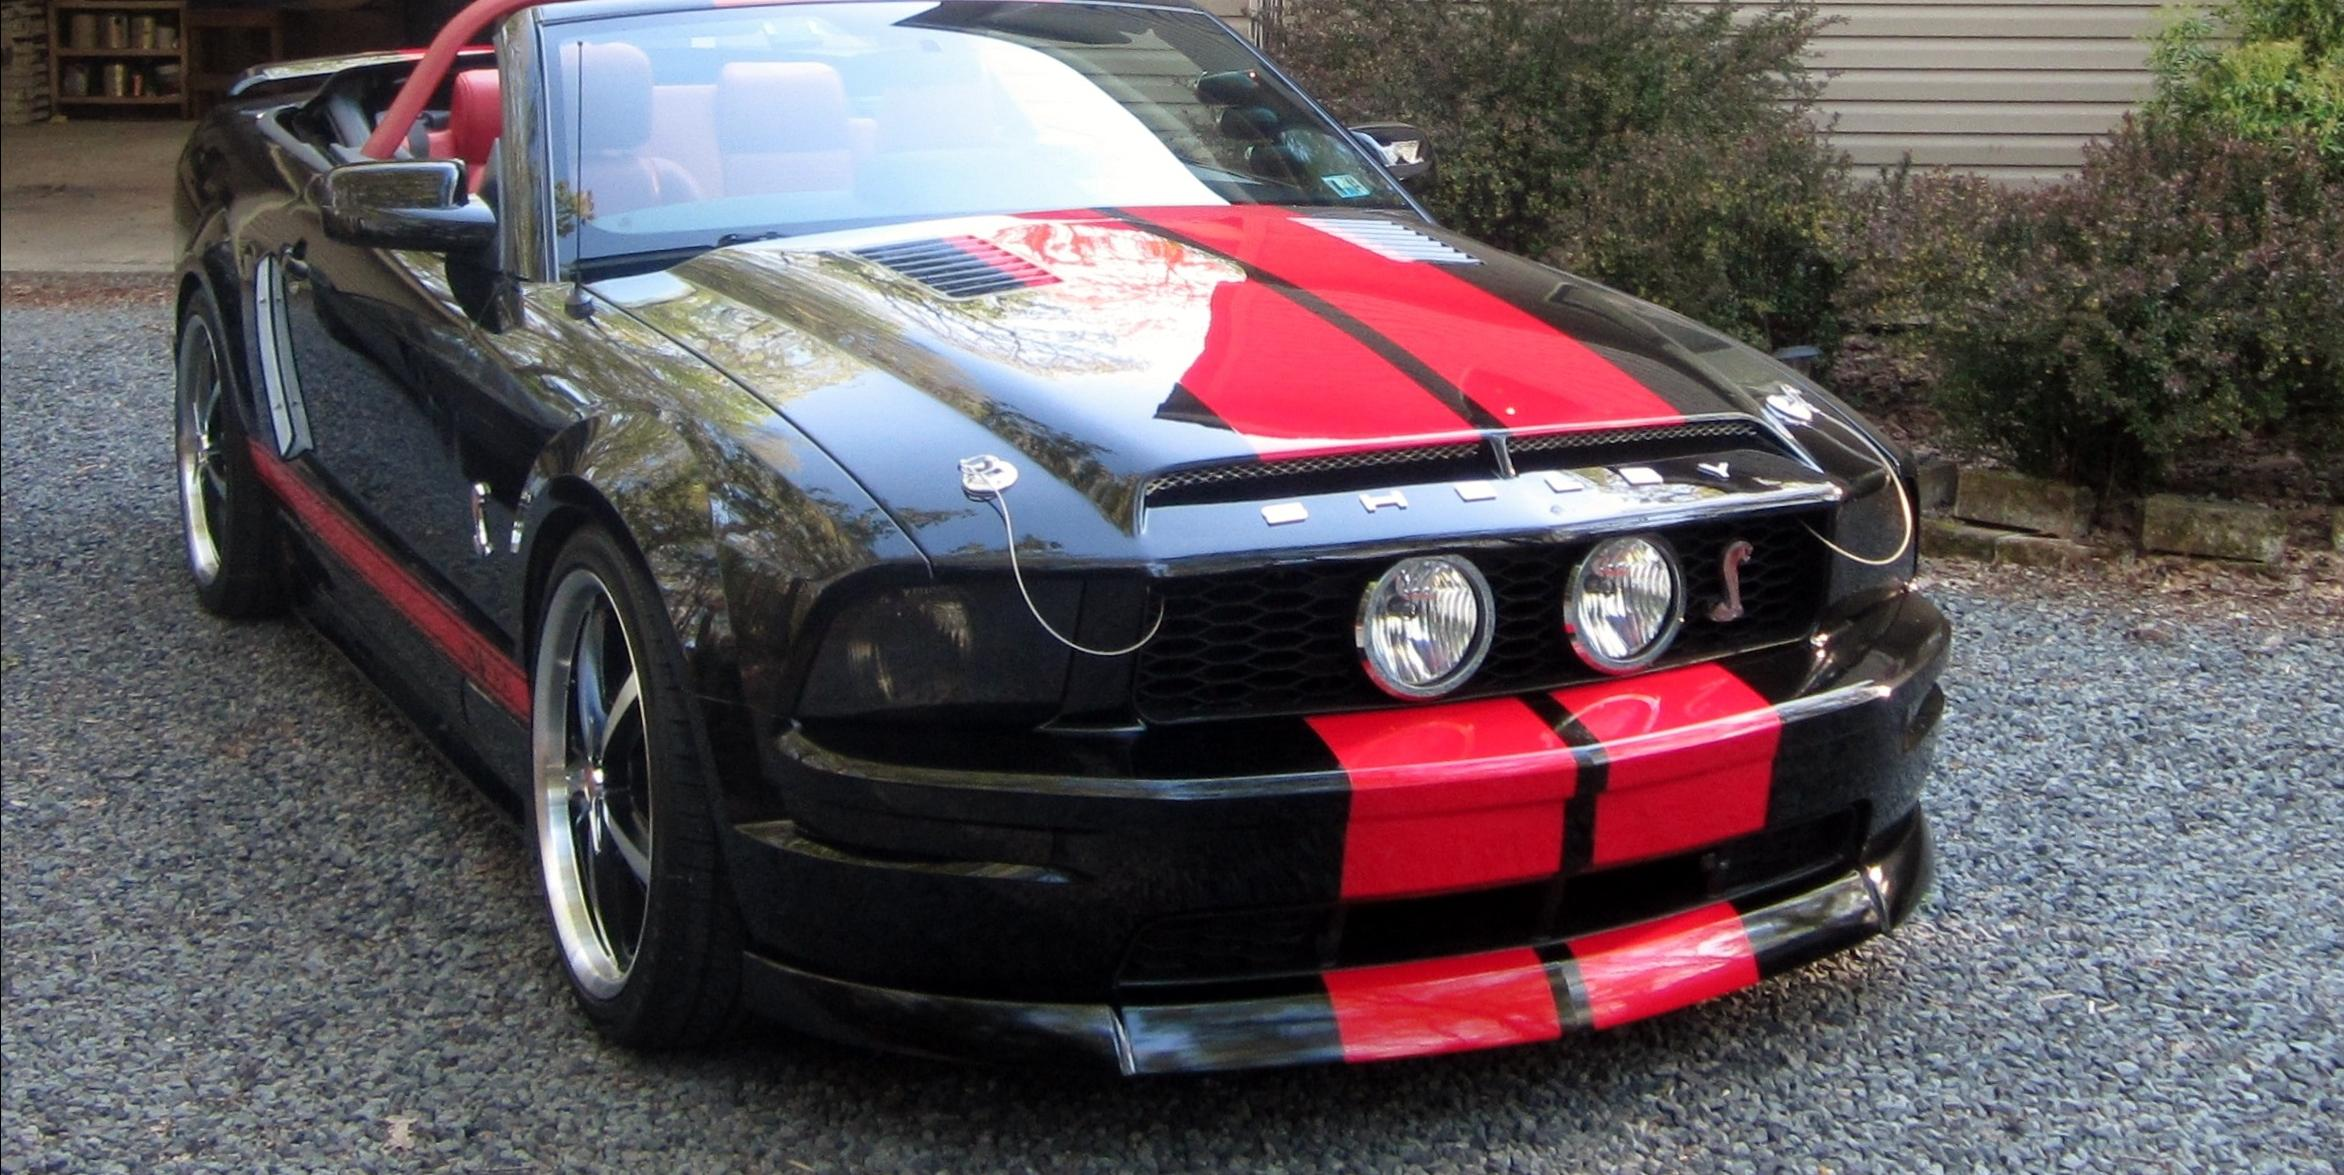 Fanatical1 2005 Ford Mustang